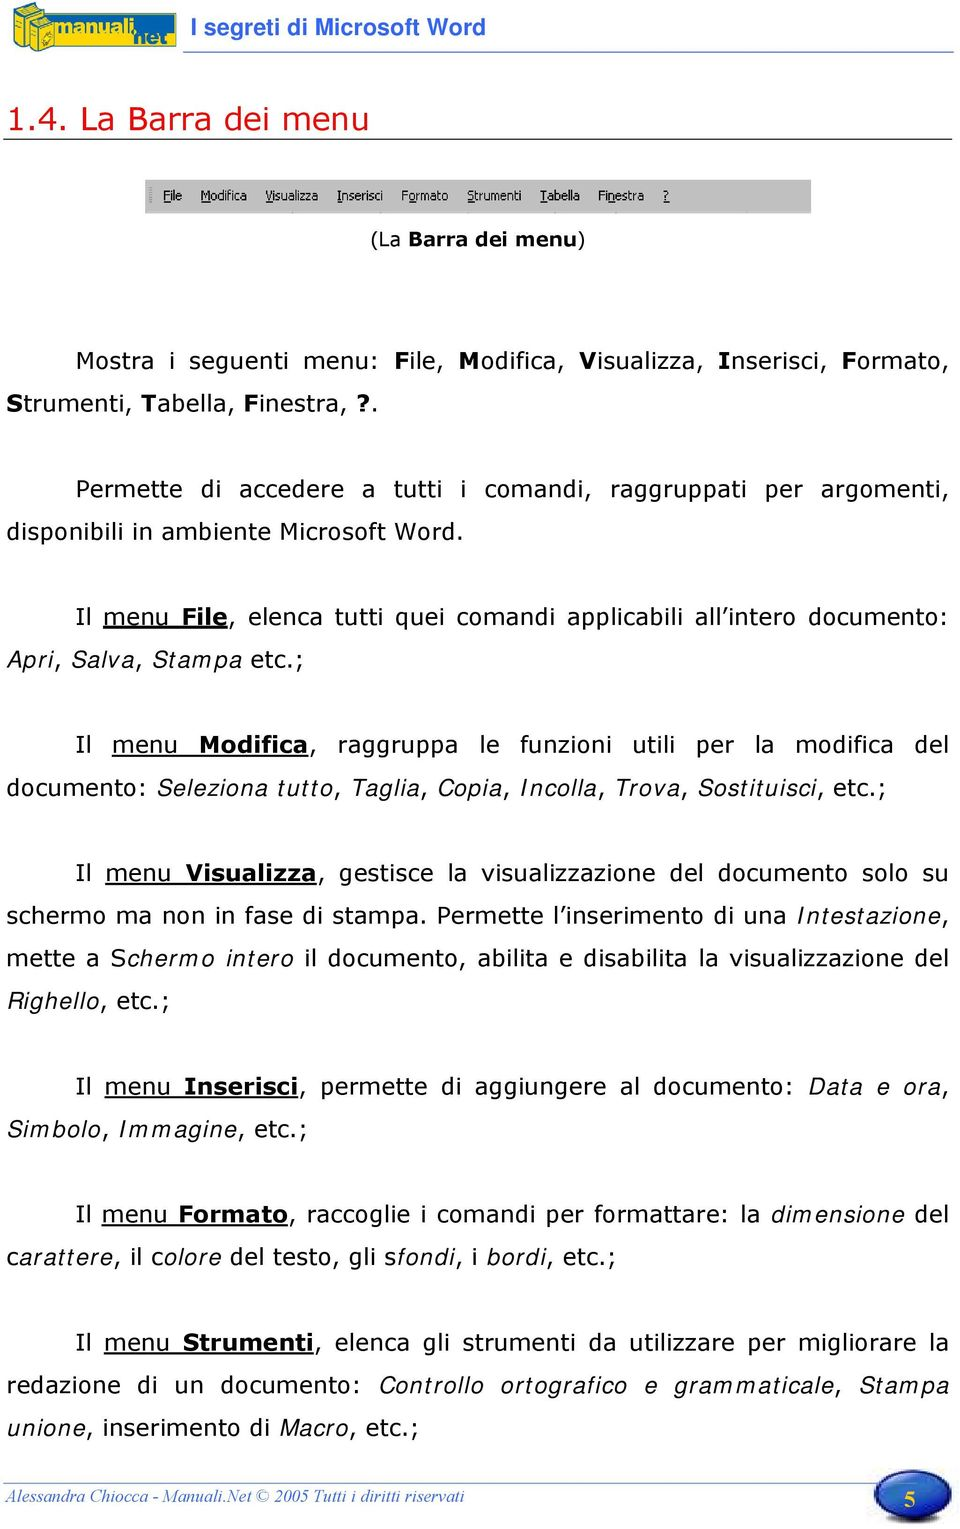 Il menu File, elenca tutti quei comandi applicabili all intero documento: Apri, Salva, Stampa etc.